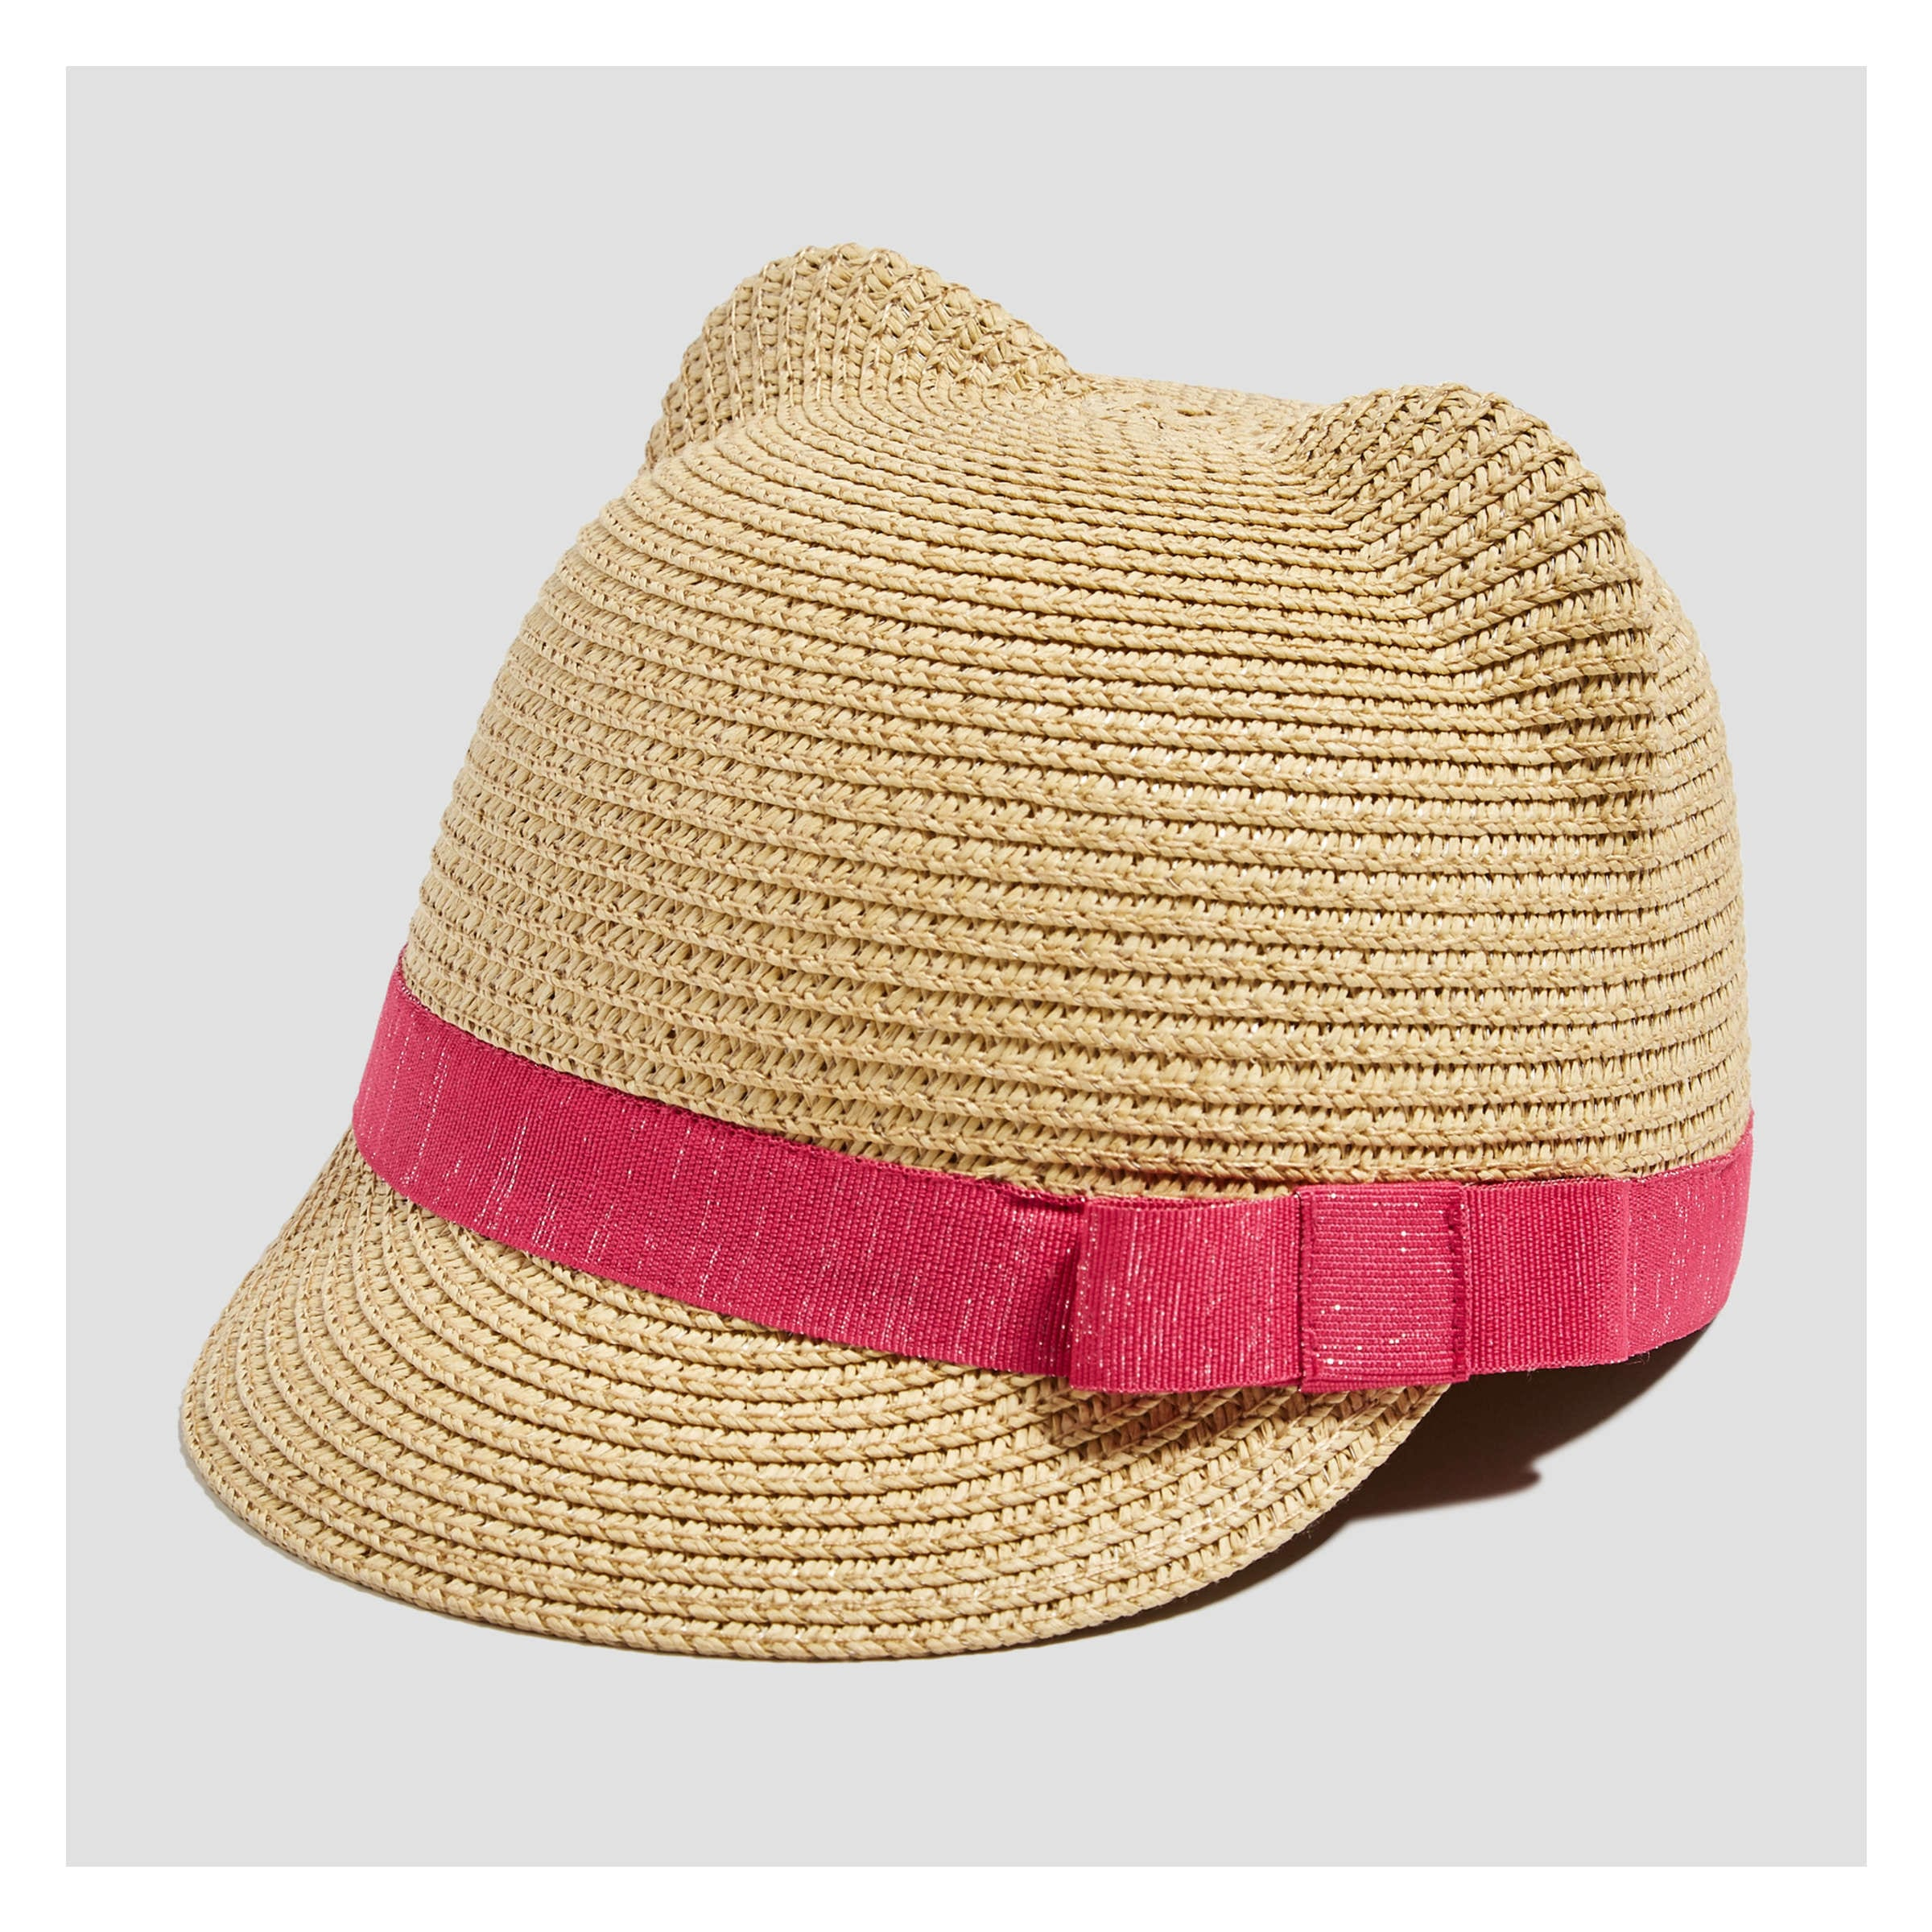 57e4dbdaa245 Toddler Girls' Cat Ear Straw Fedora in Natural from Joe Fresh